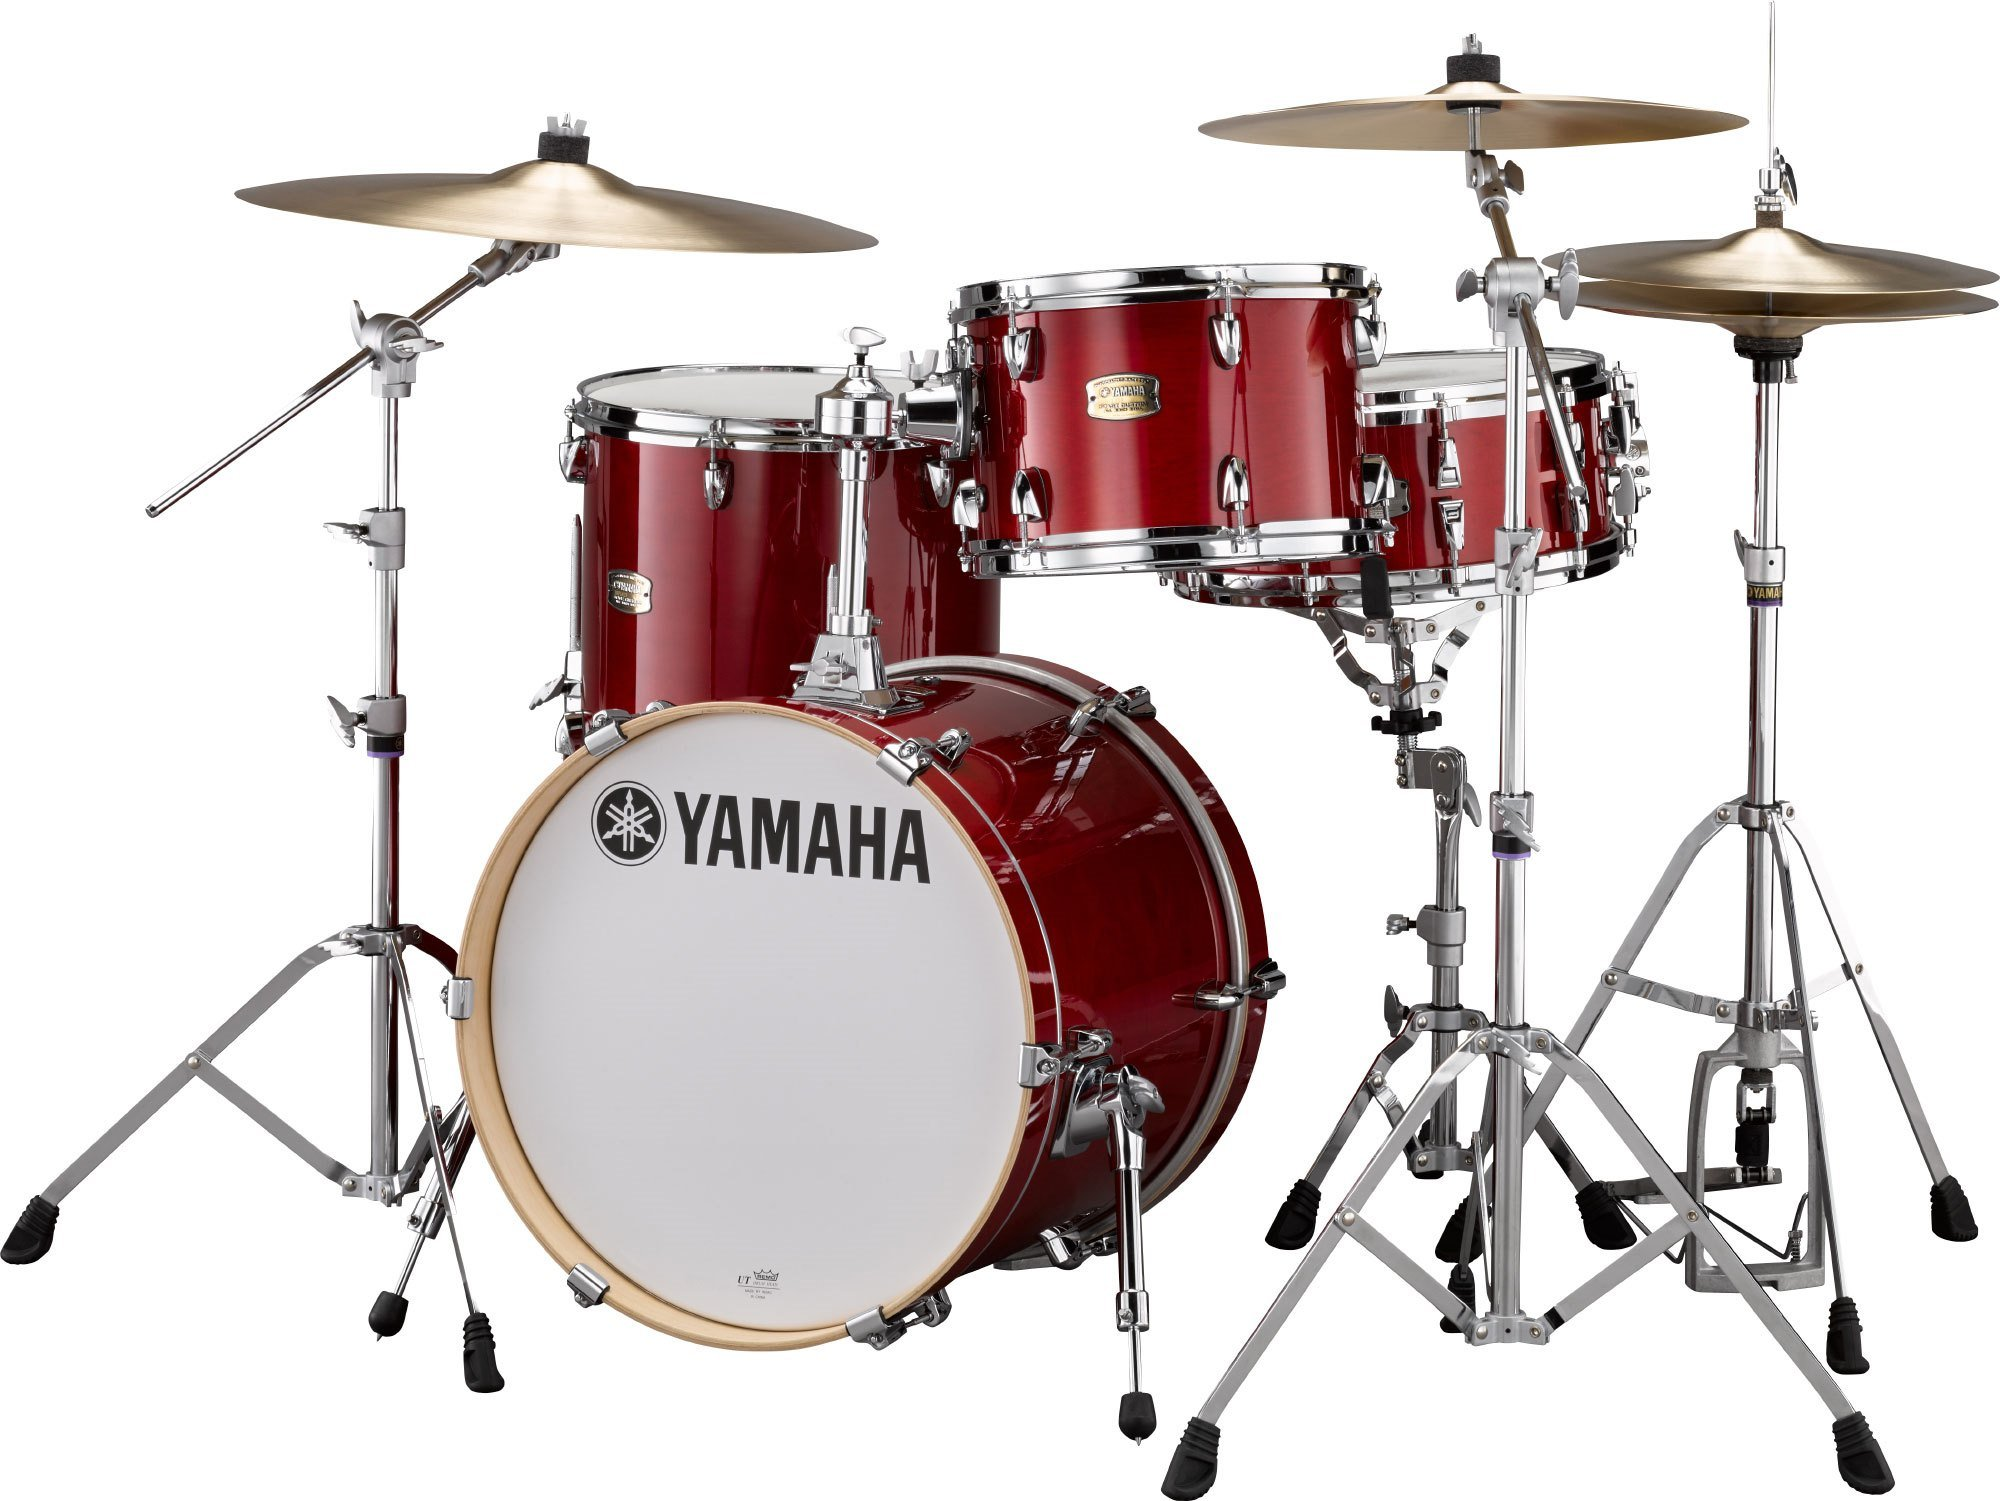 YAMAHA SBP8F3CR STAGE CUSTOM BOP KIT, 3-PEICE DRUM SHELLS, CRANBERRY RED